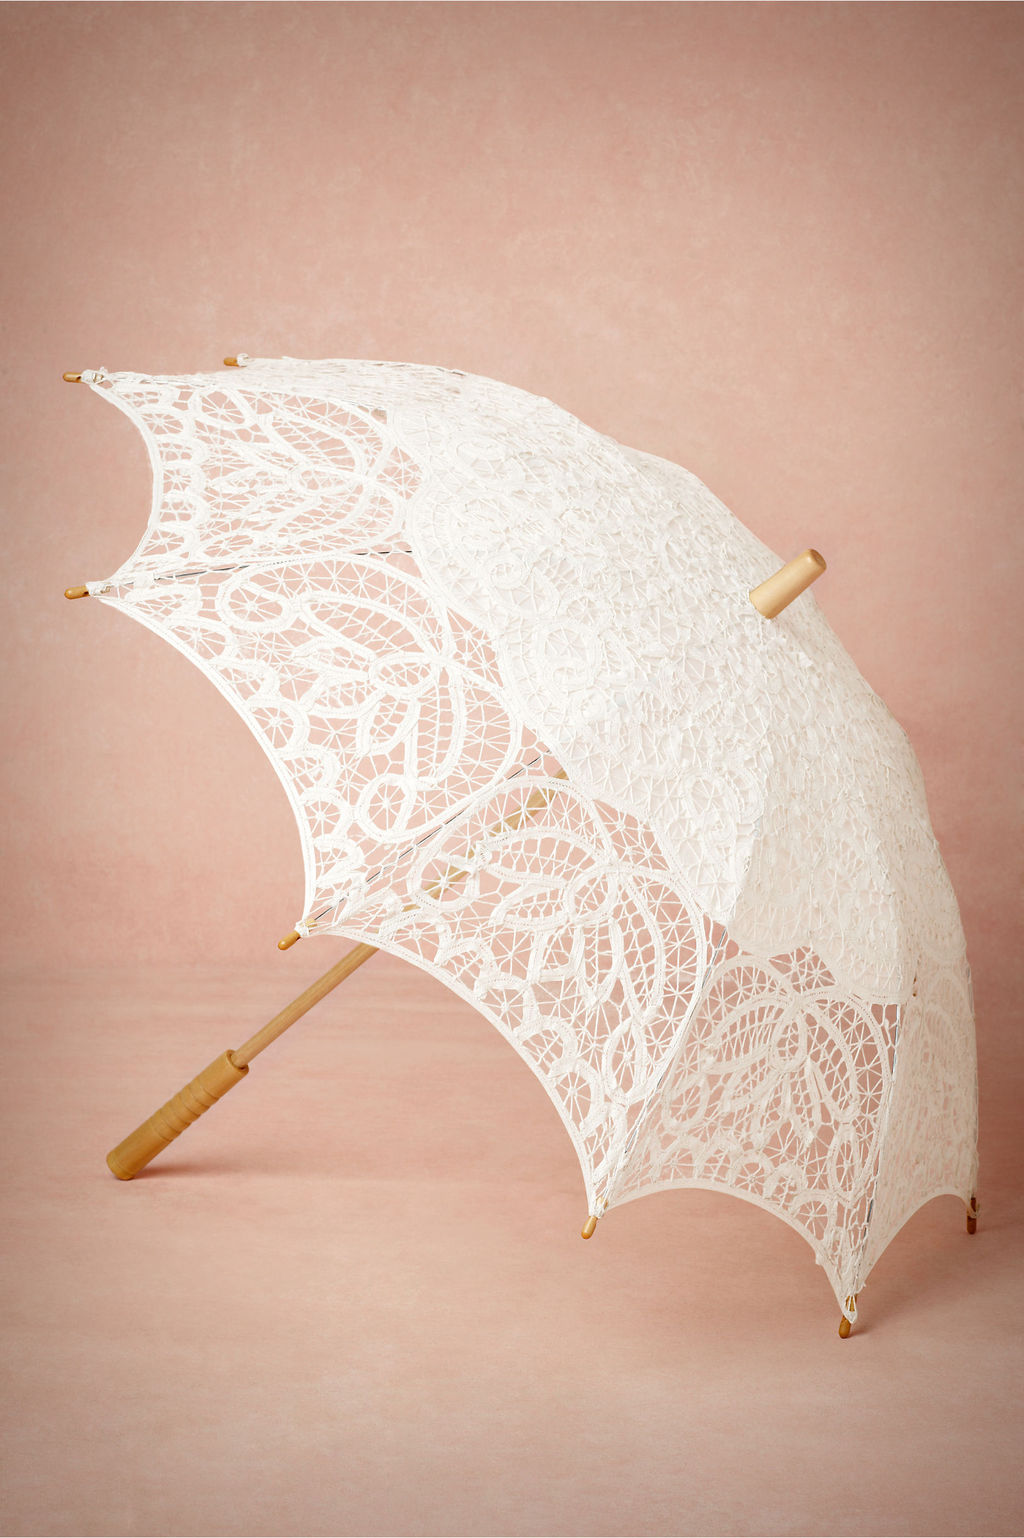 Picturesque%20parasol.full